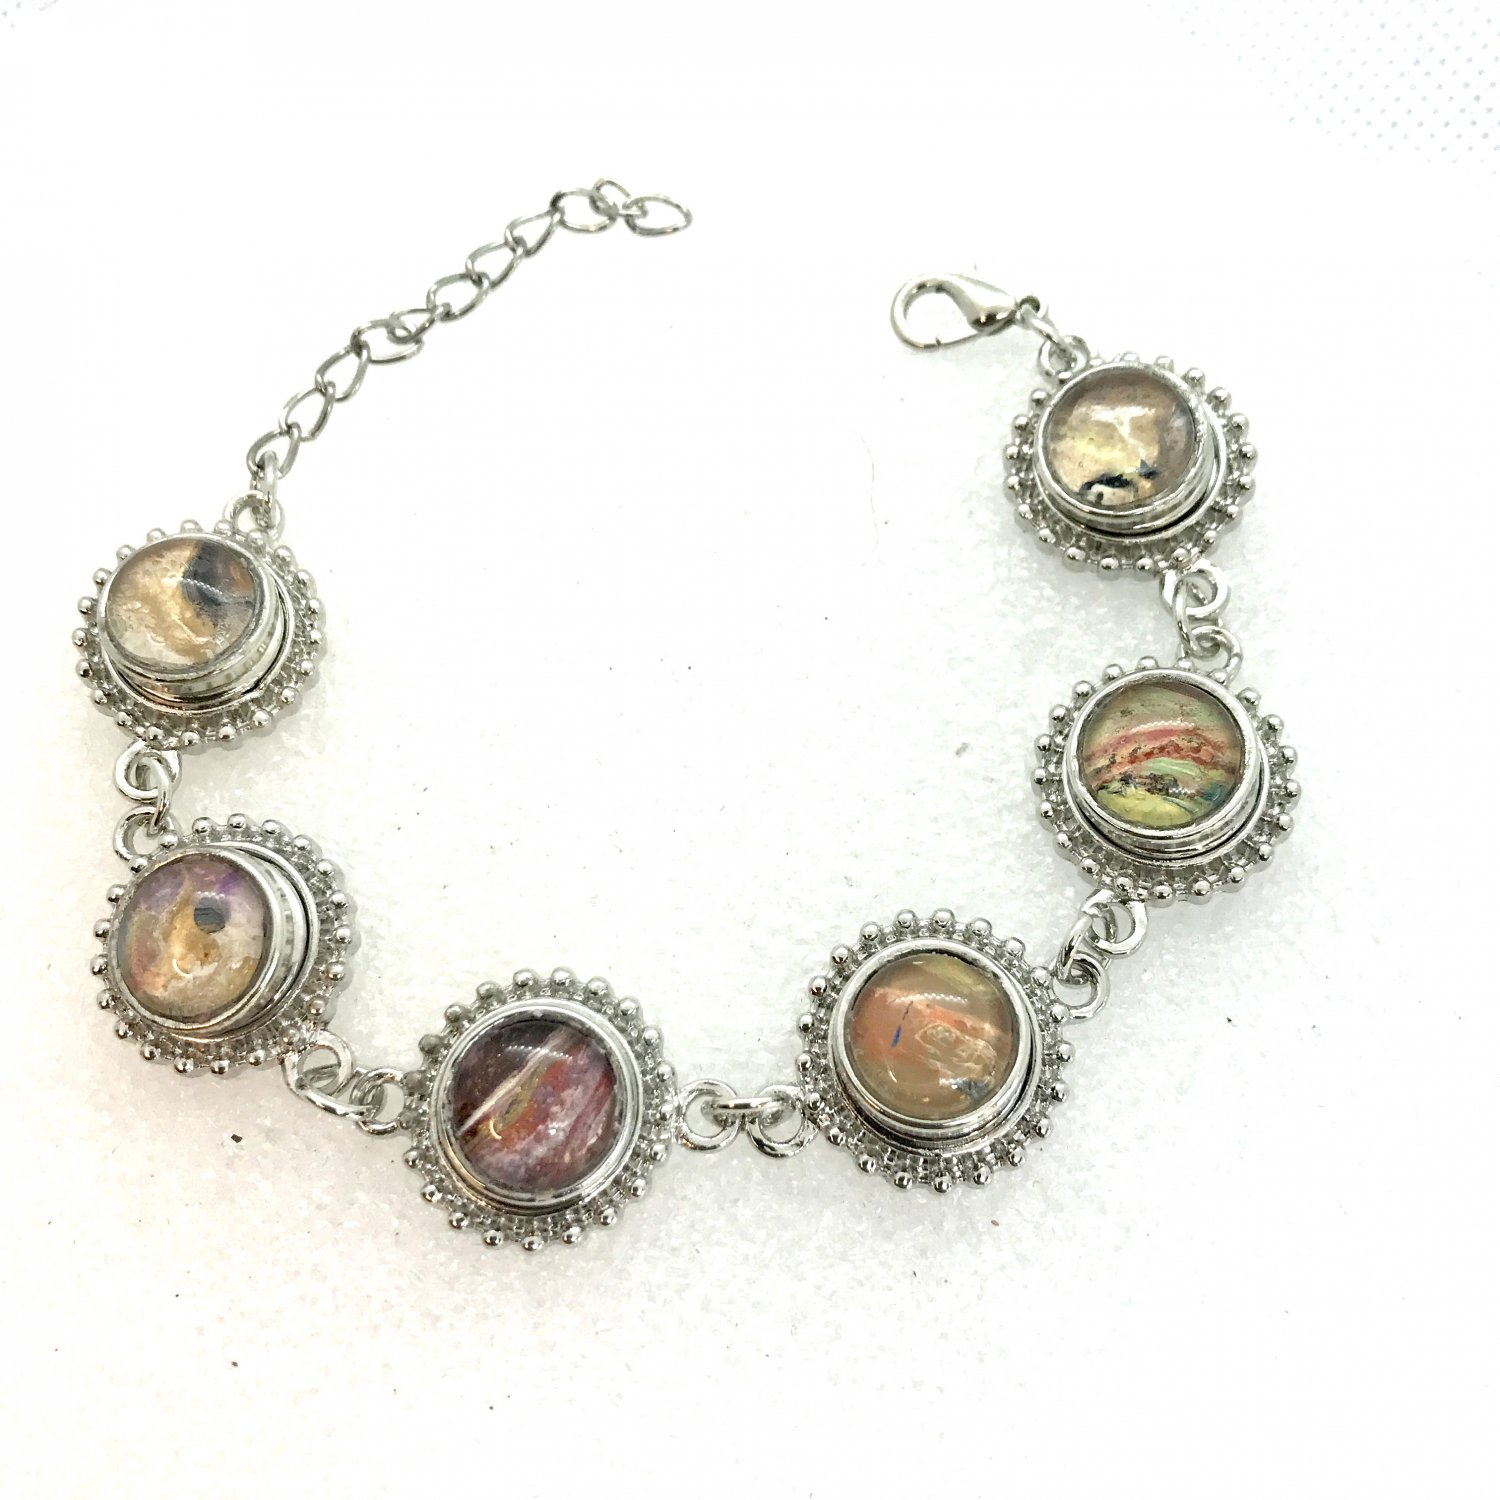 Bracelet 6x Mini Snap 12mm Adjustable Handcrafted Valentine Gift Fast Shipping